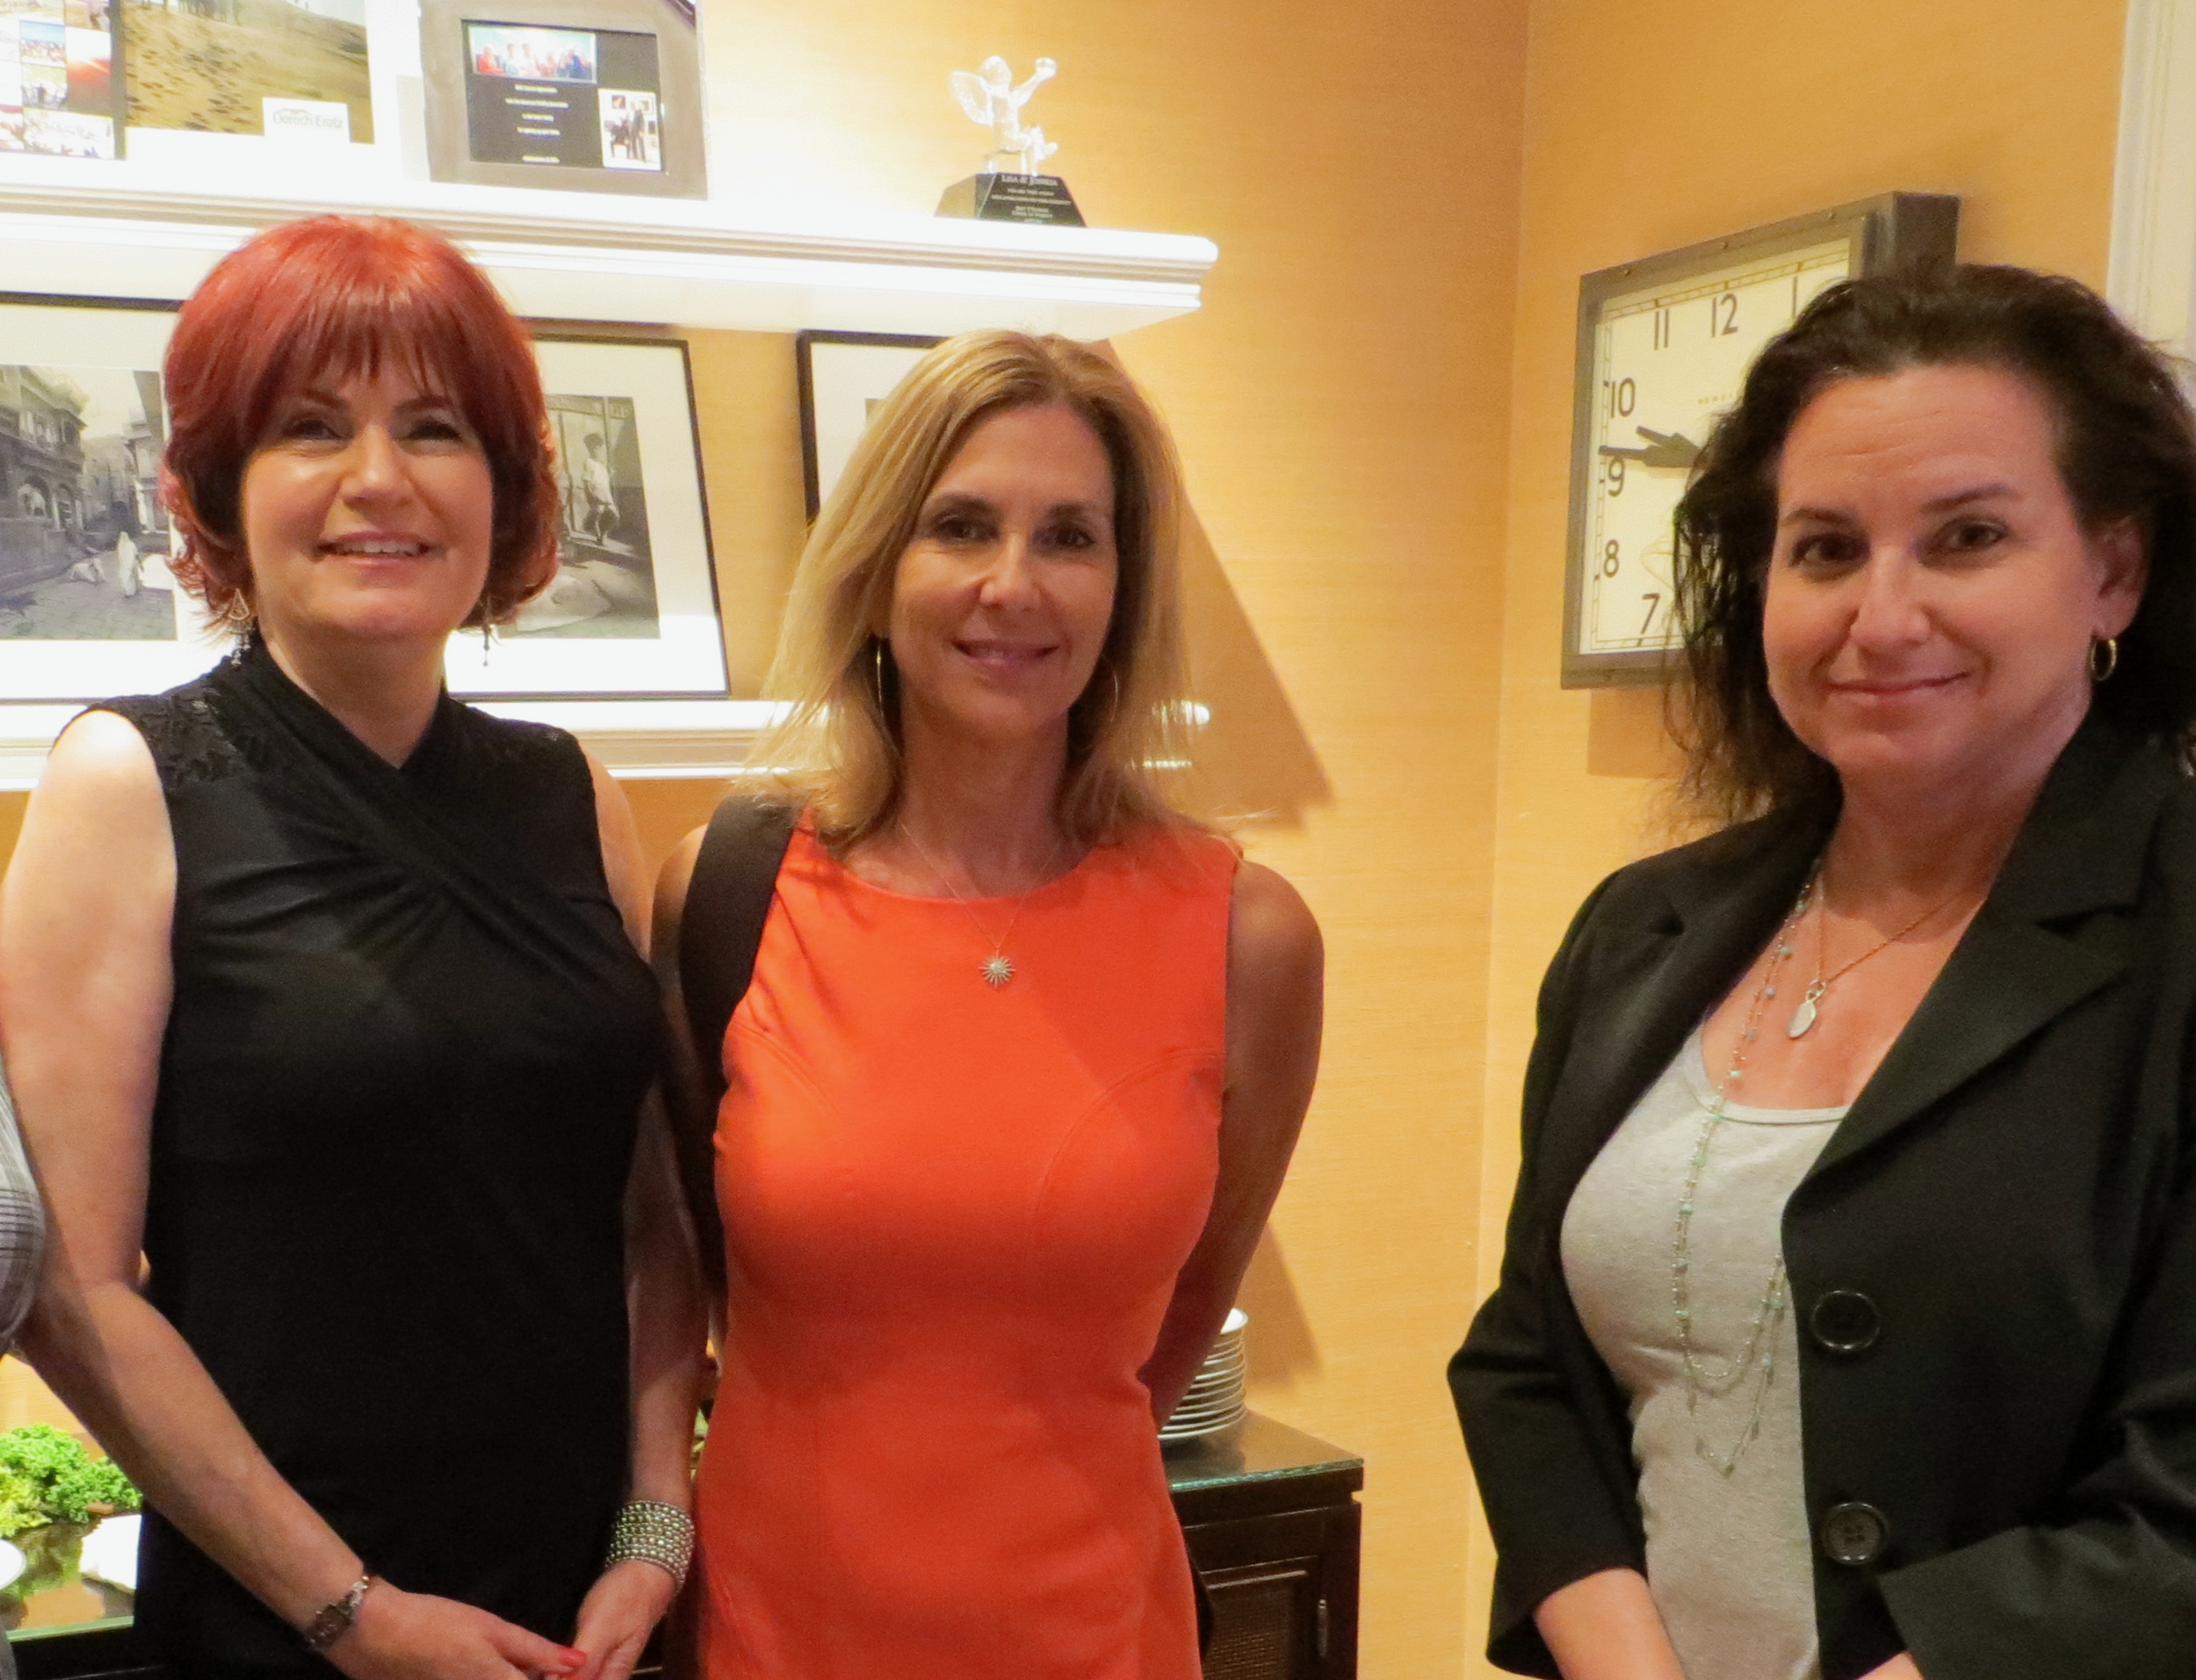 Candy Mintz, AnnDee Levy & Patricia Wolff